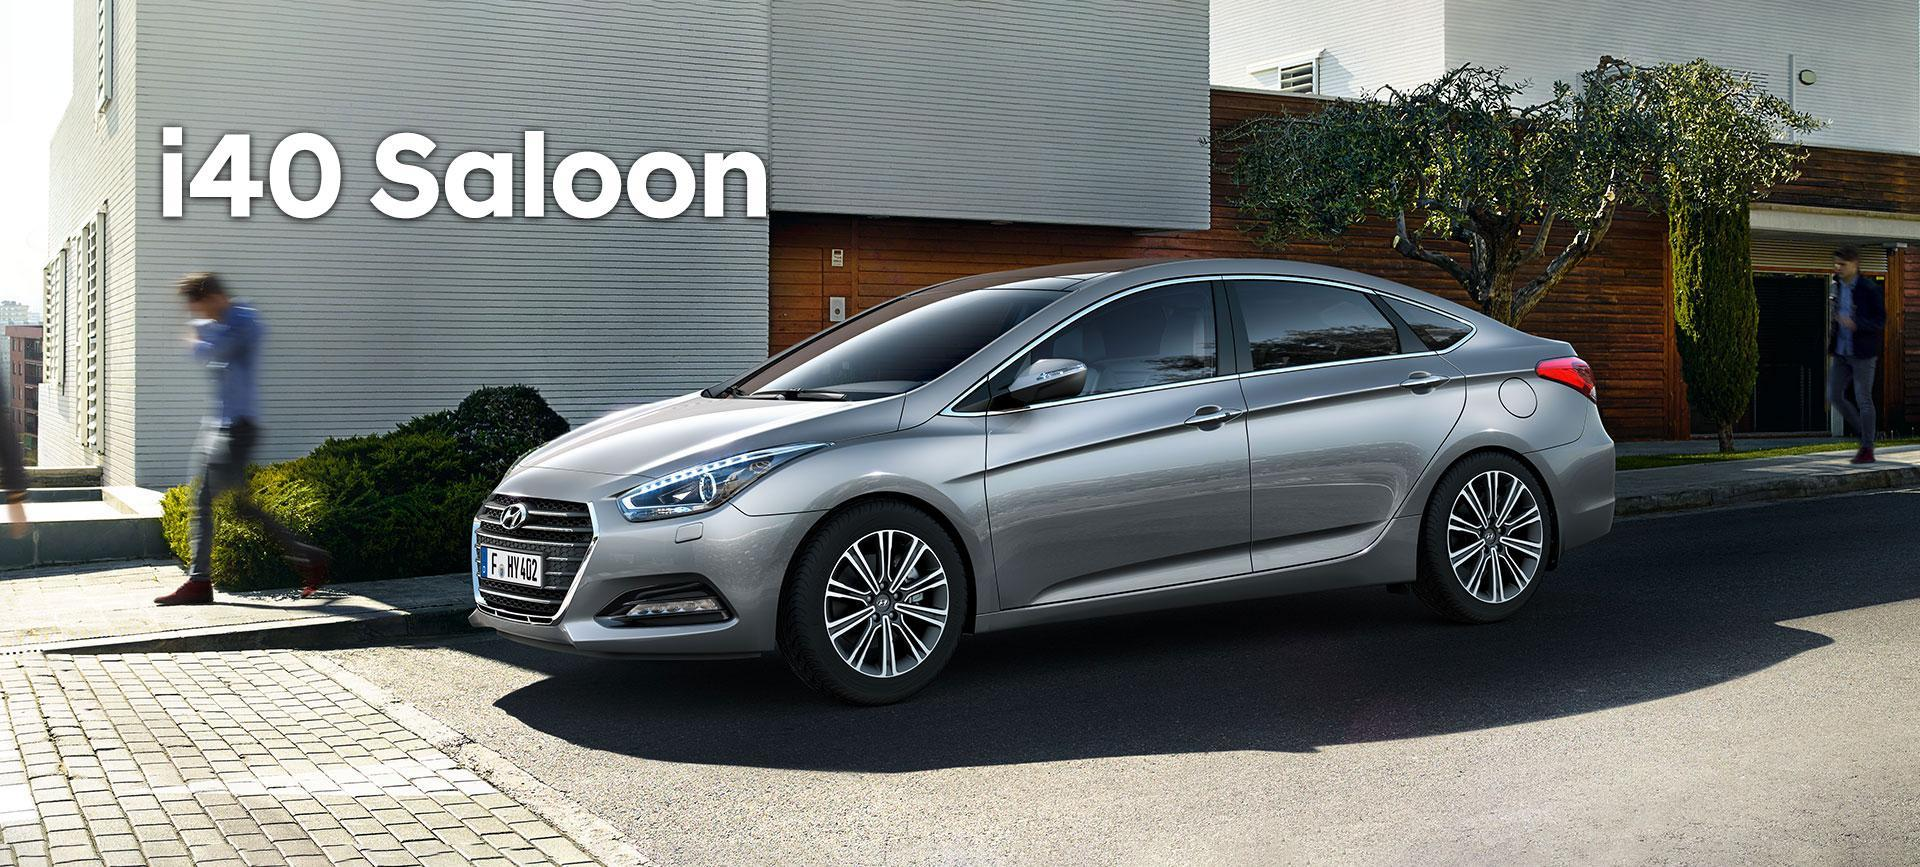 i40 Saloon | Hyundai Bolands Wexford in Wexford